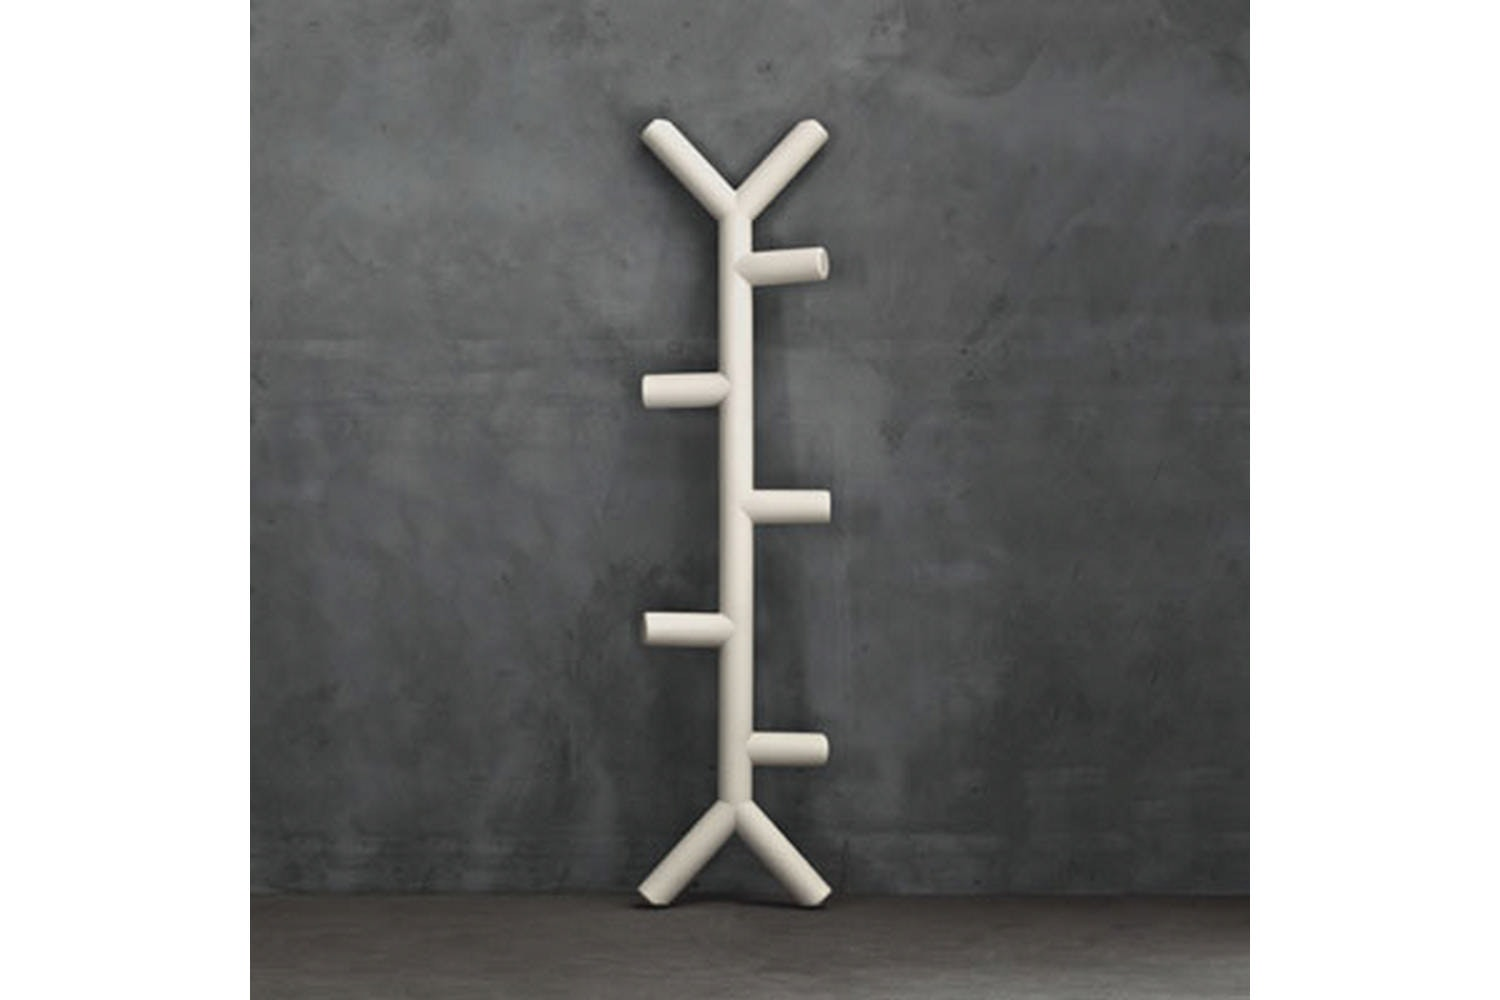 Ramo Coat Stand by Ecal/Emanuelle Jaques for Serralunga